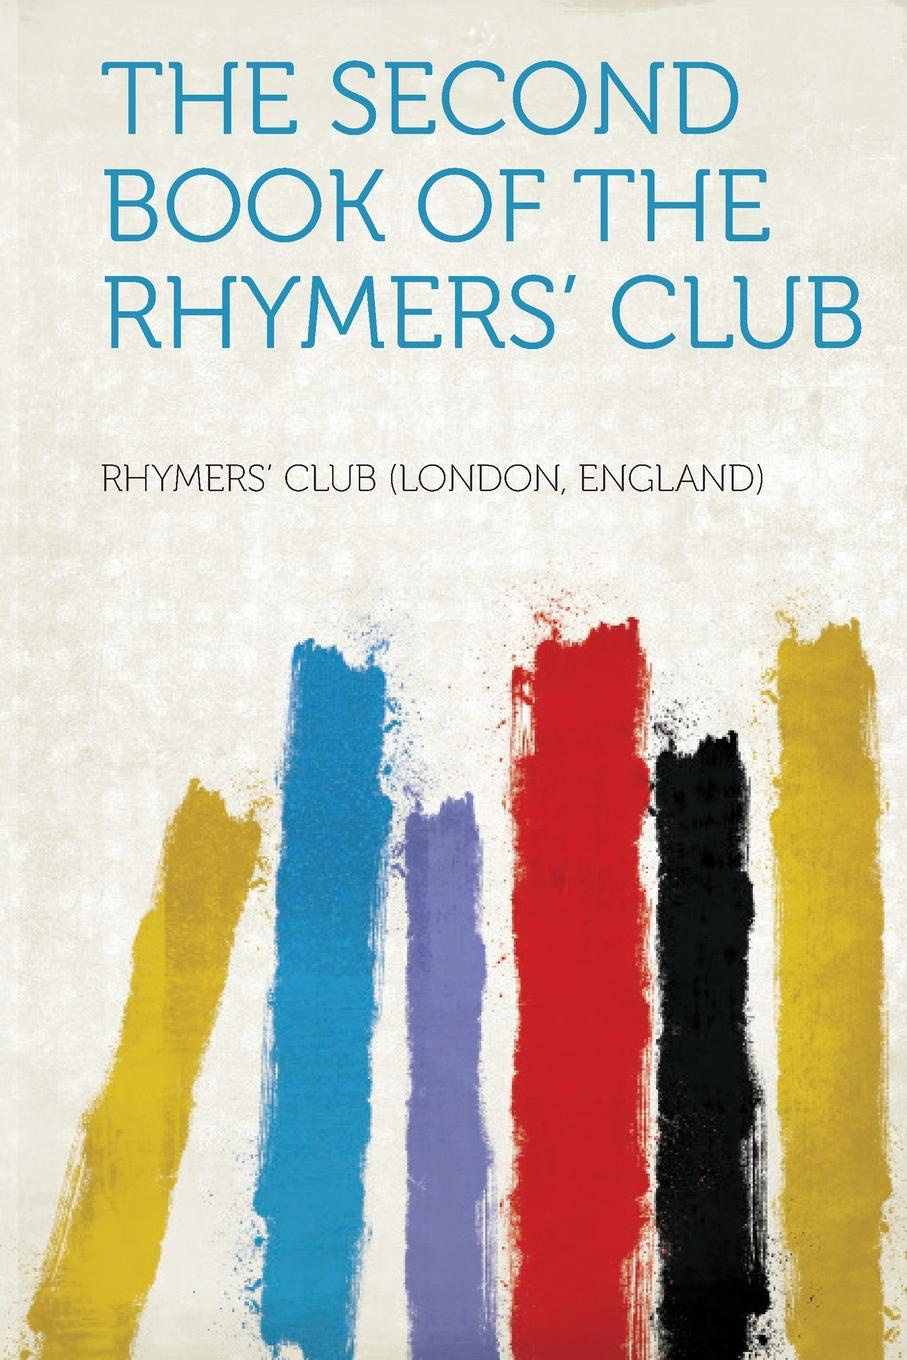 The Second Book of the Rhymers. Club